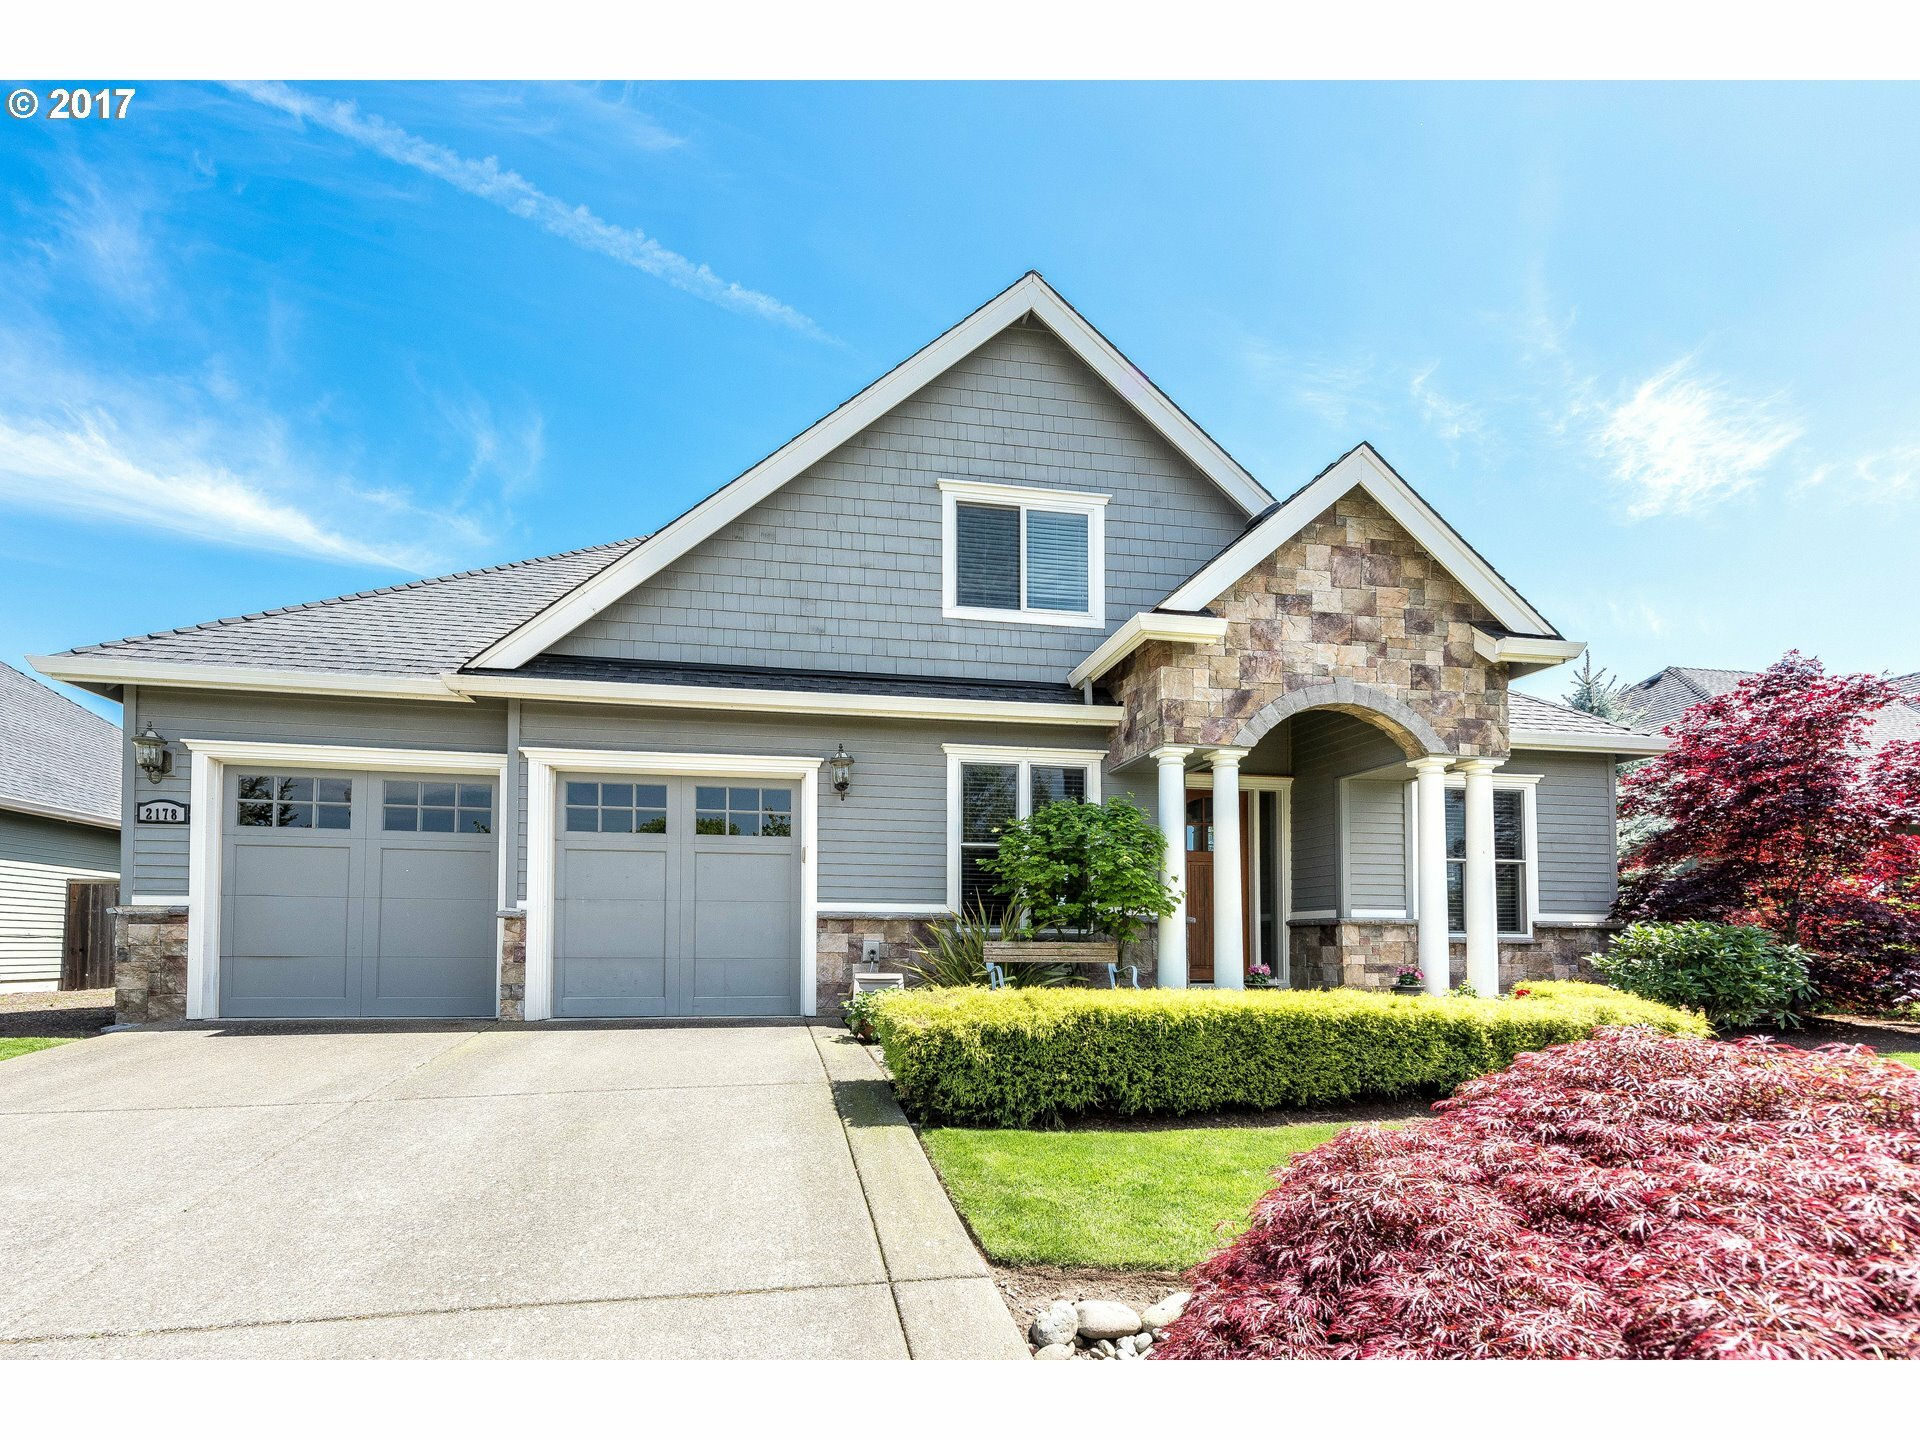 2178 Meridian Dr, Woodburn, OR - USA (photo 2)